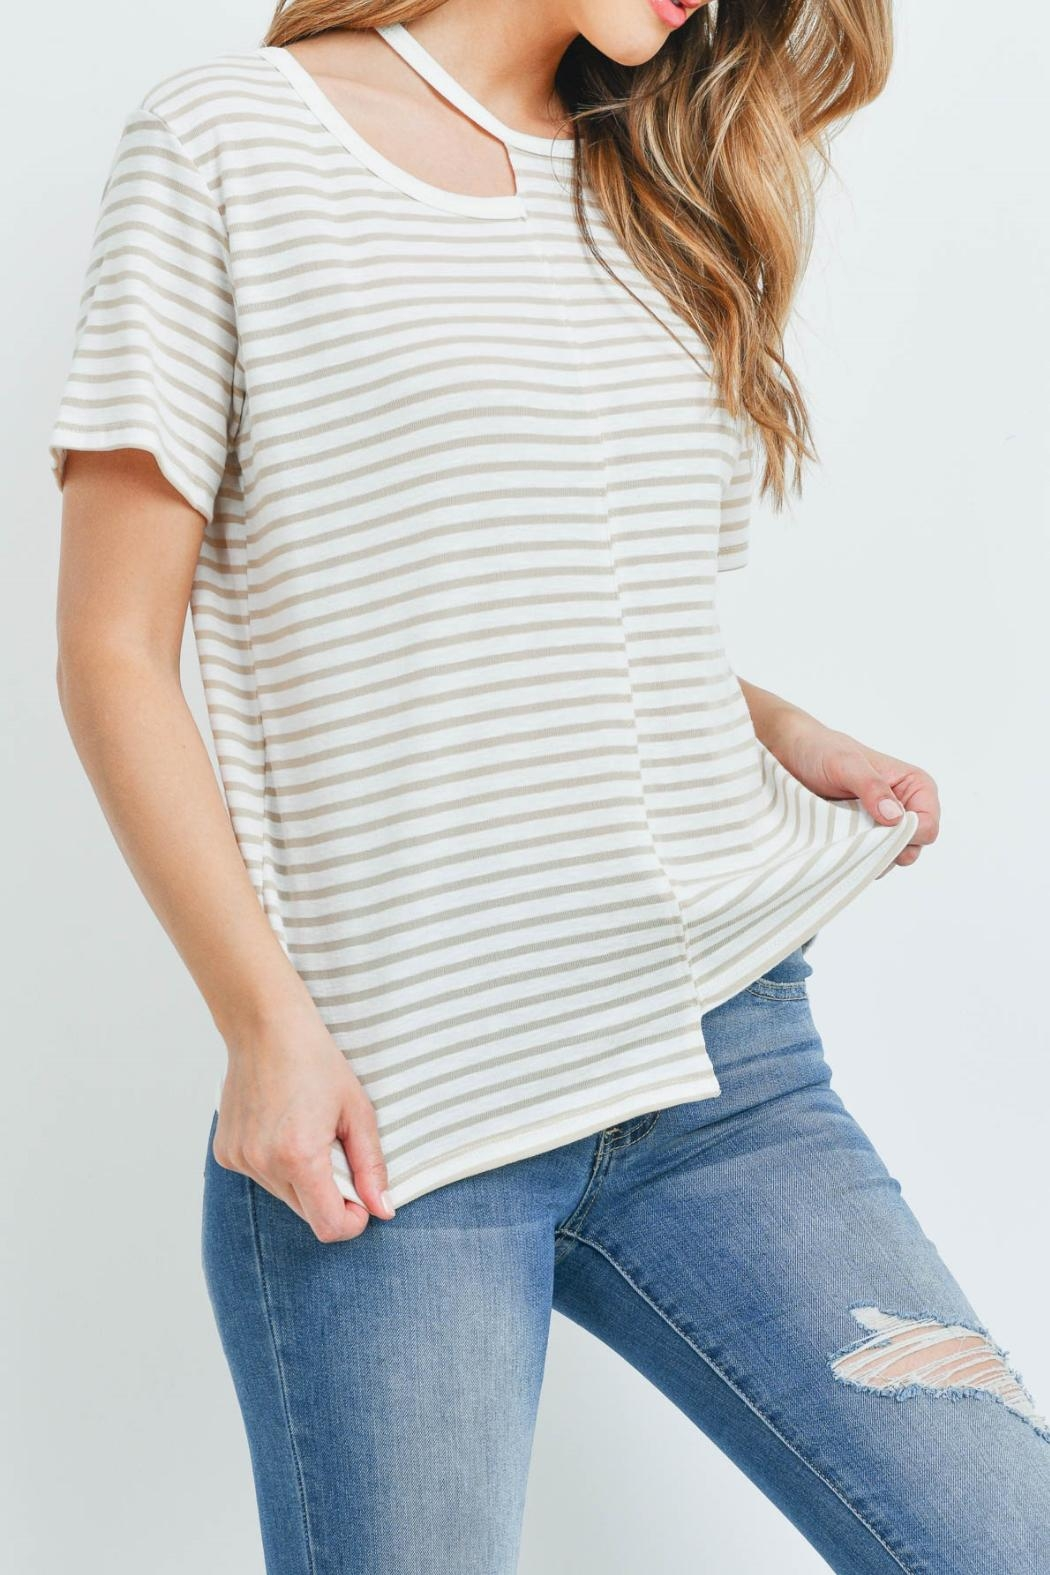 Jolie Ivory Taupe-Striped Top - Side Cropped Image